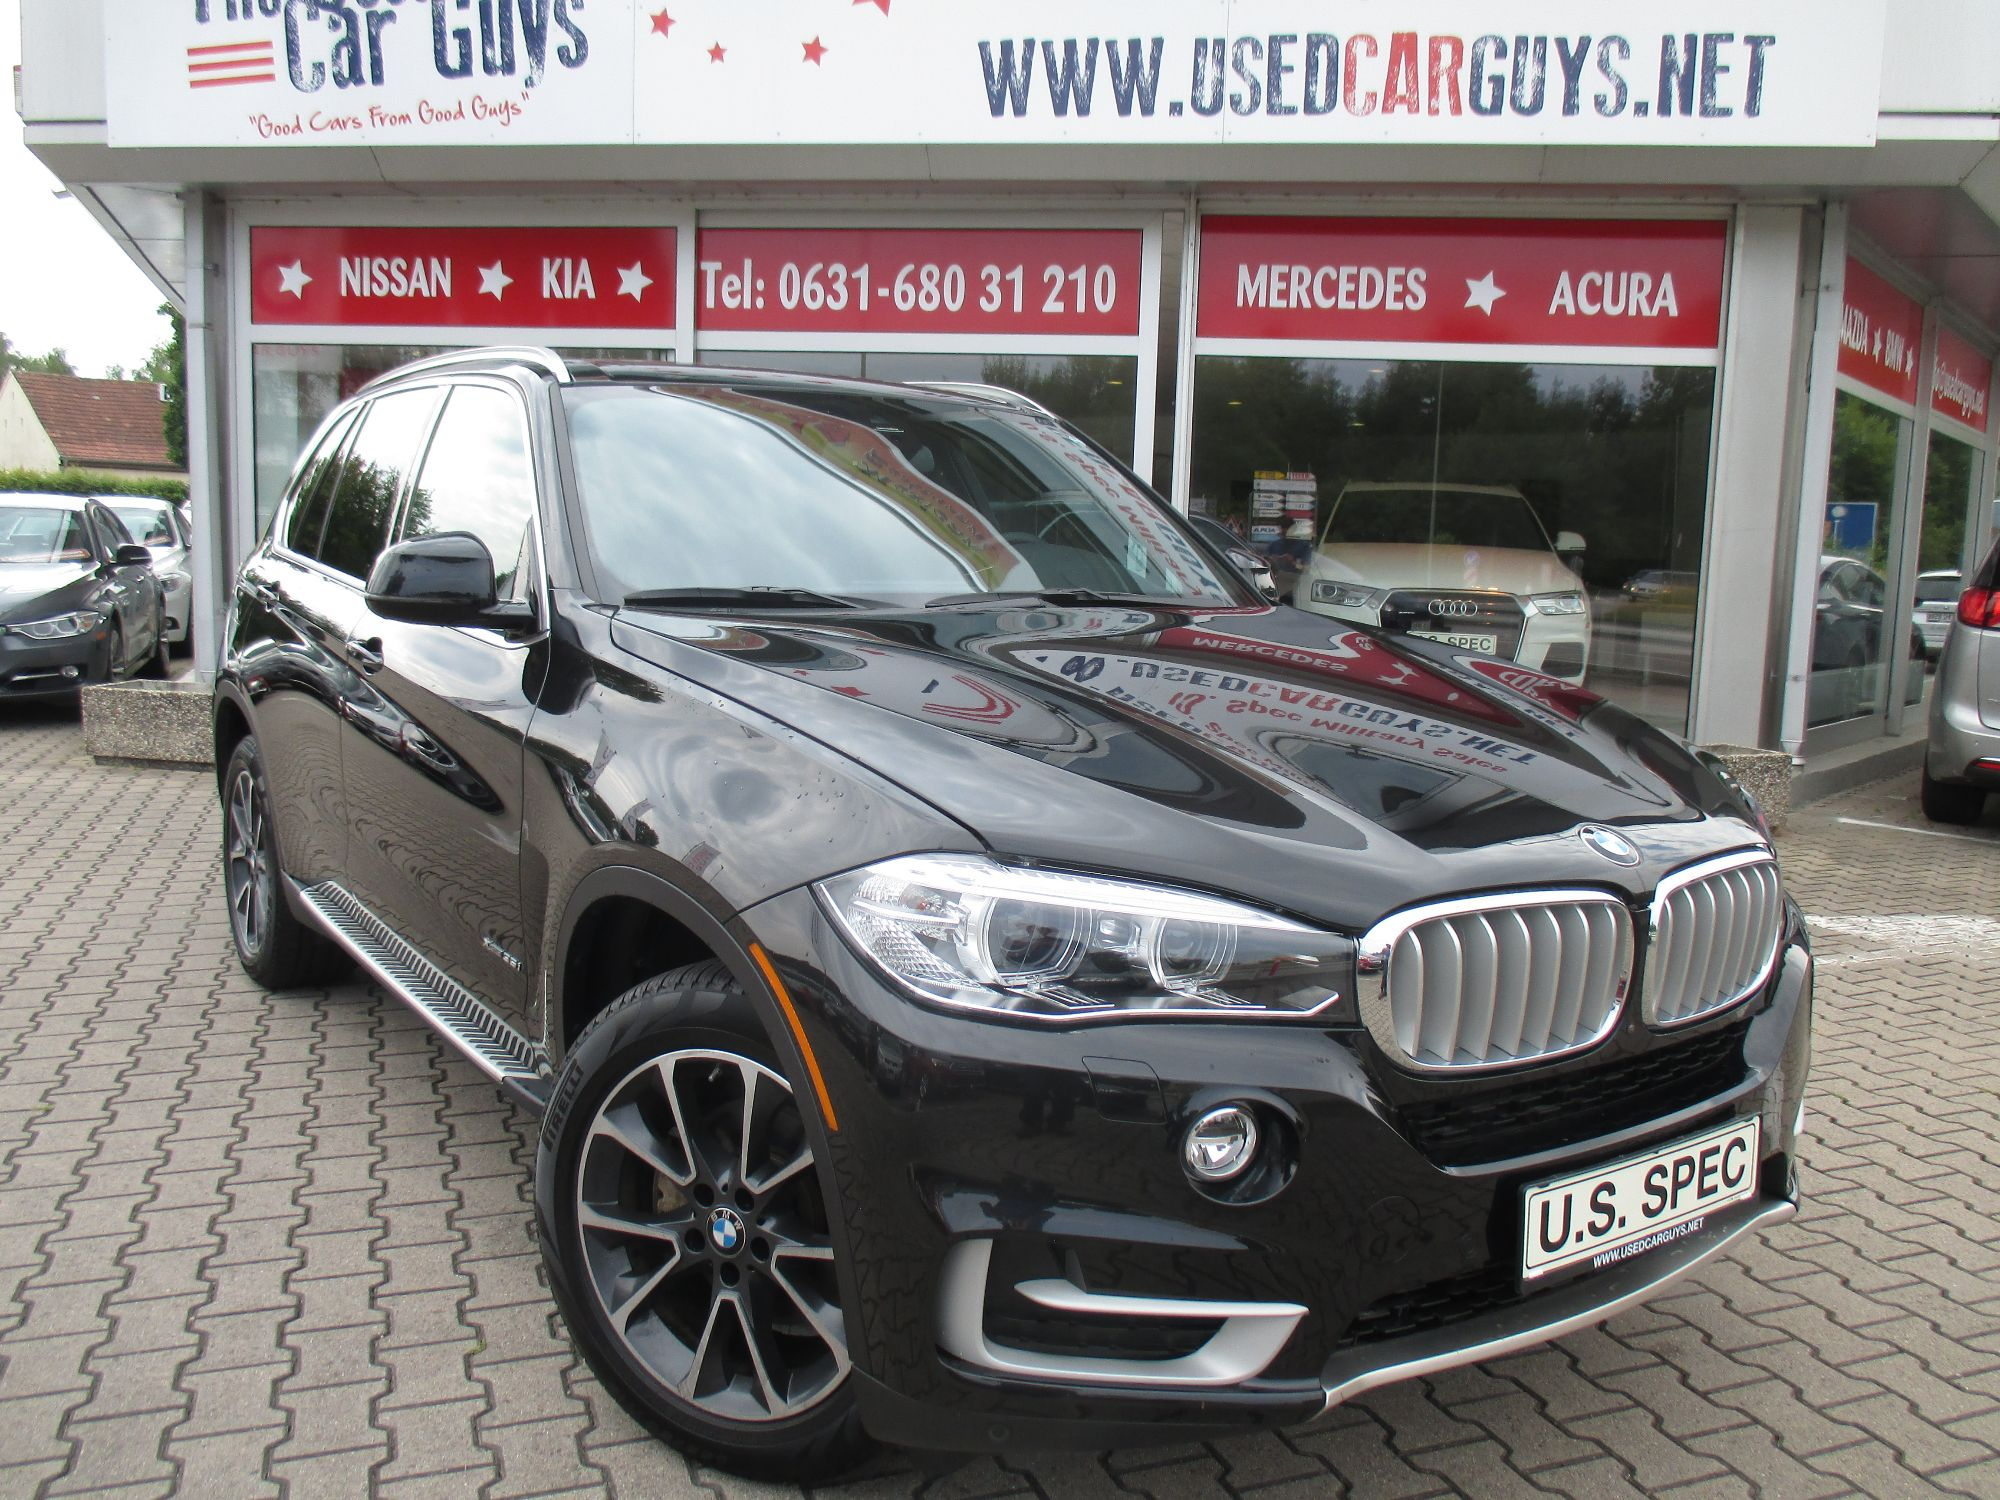 BMW X XDrivei AWD The Used Car GuysThe Used Car Guys - Good guys used cars